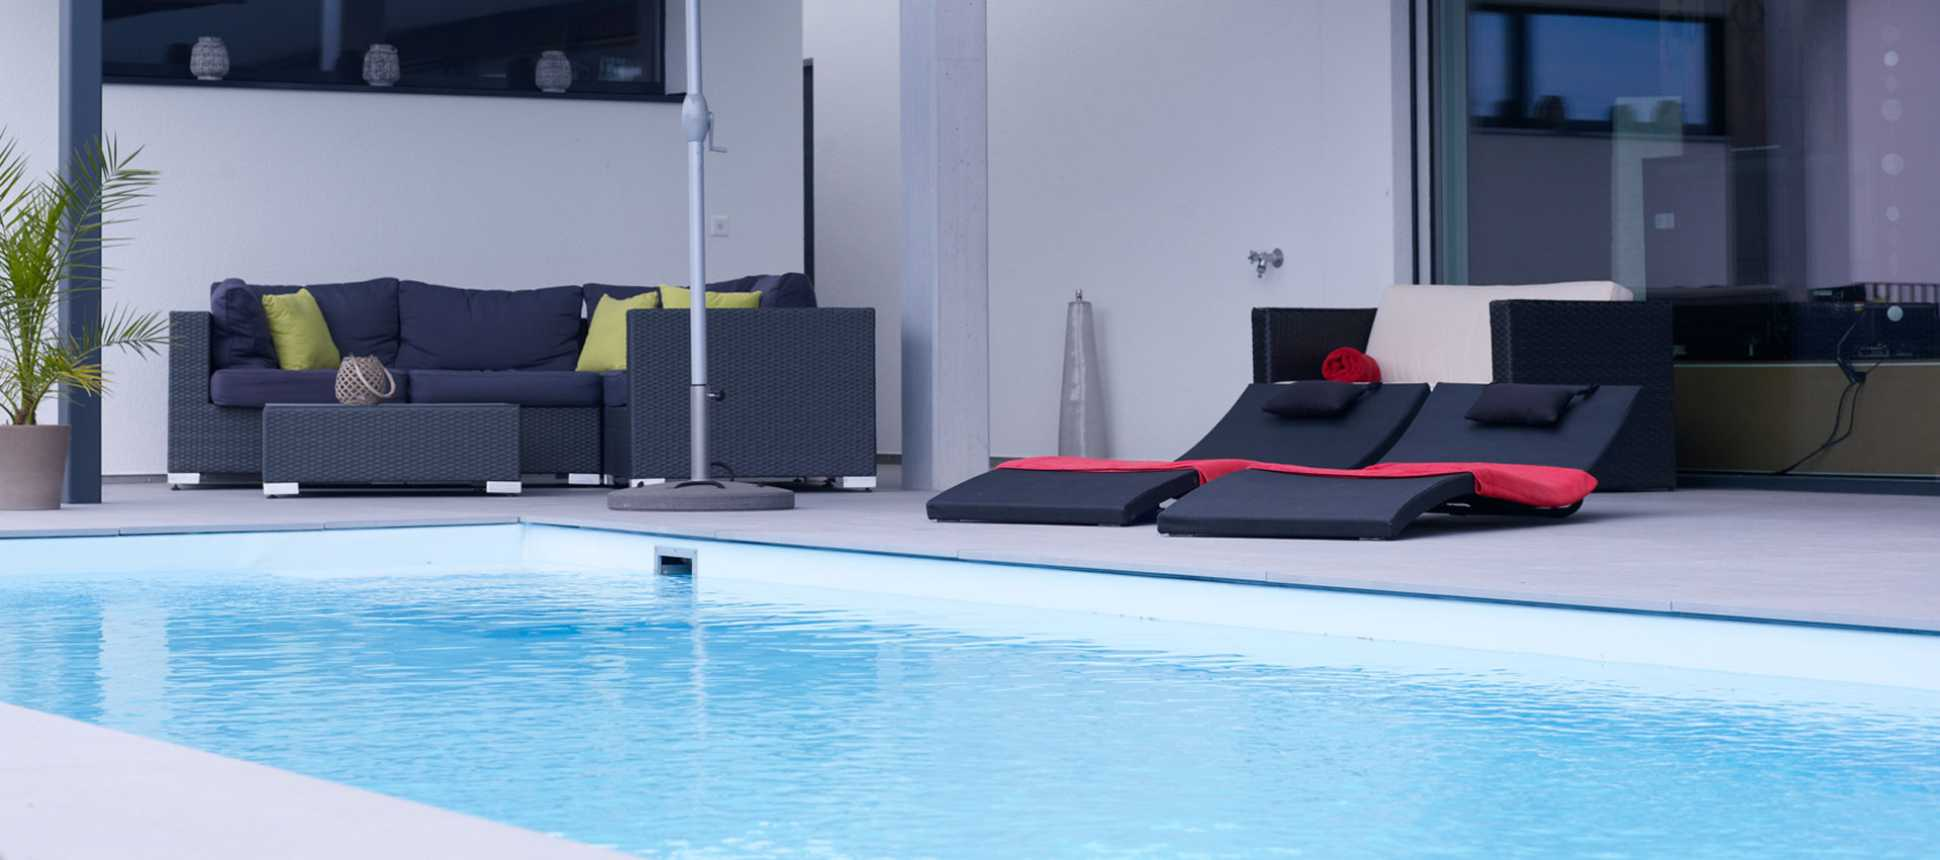 Swimmingpool mit Lounge